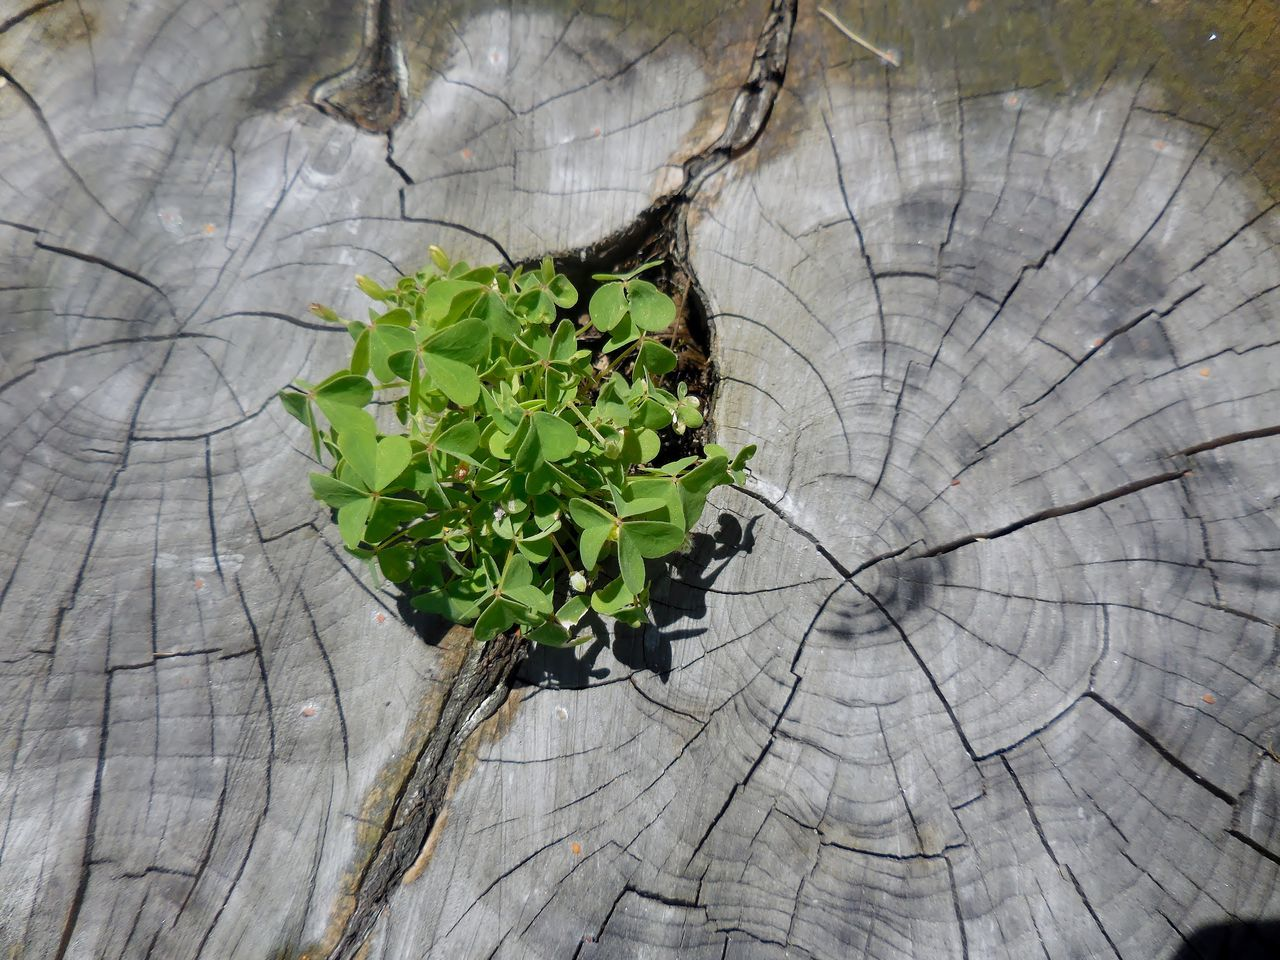 plant, nature, growth, wood - material, close-up, no people, leaf, tree, outdoors, day, tree stump, branch, textured, tree trunk, beauty in nature, tree ring, freshness